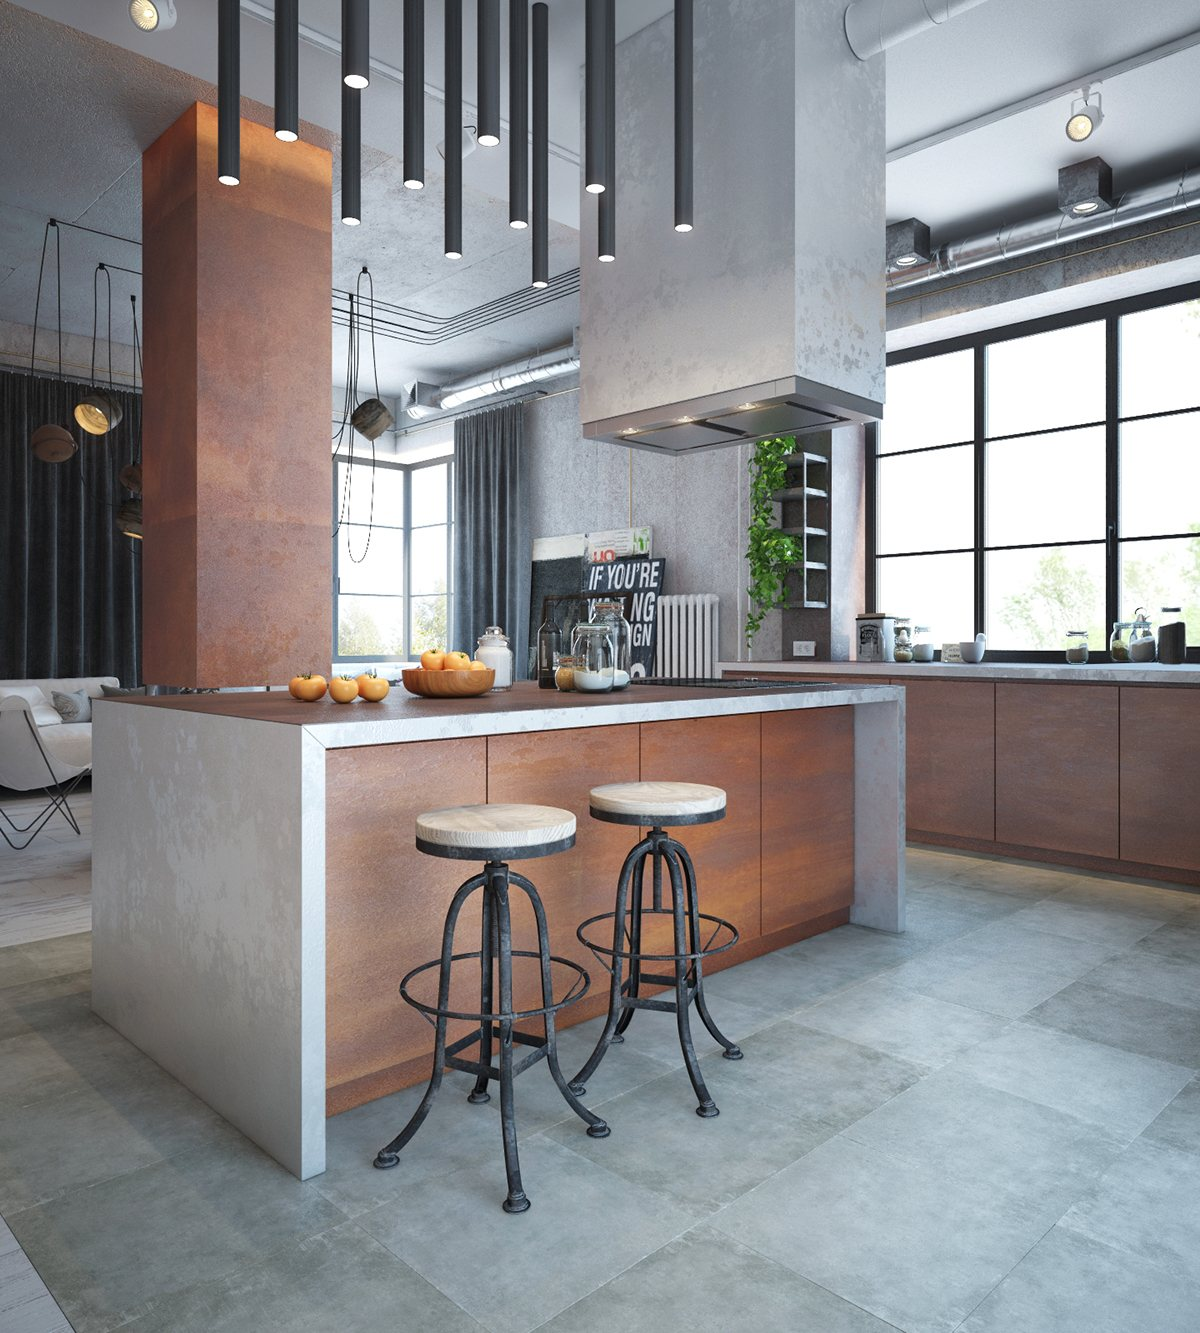 Industrial Kitchen Design Ideas: 32 Industrial Style Kitchens That Will Make You Fall In Love